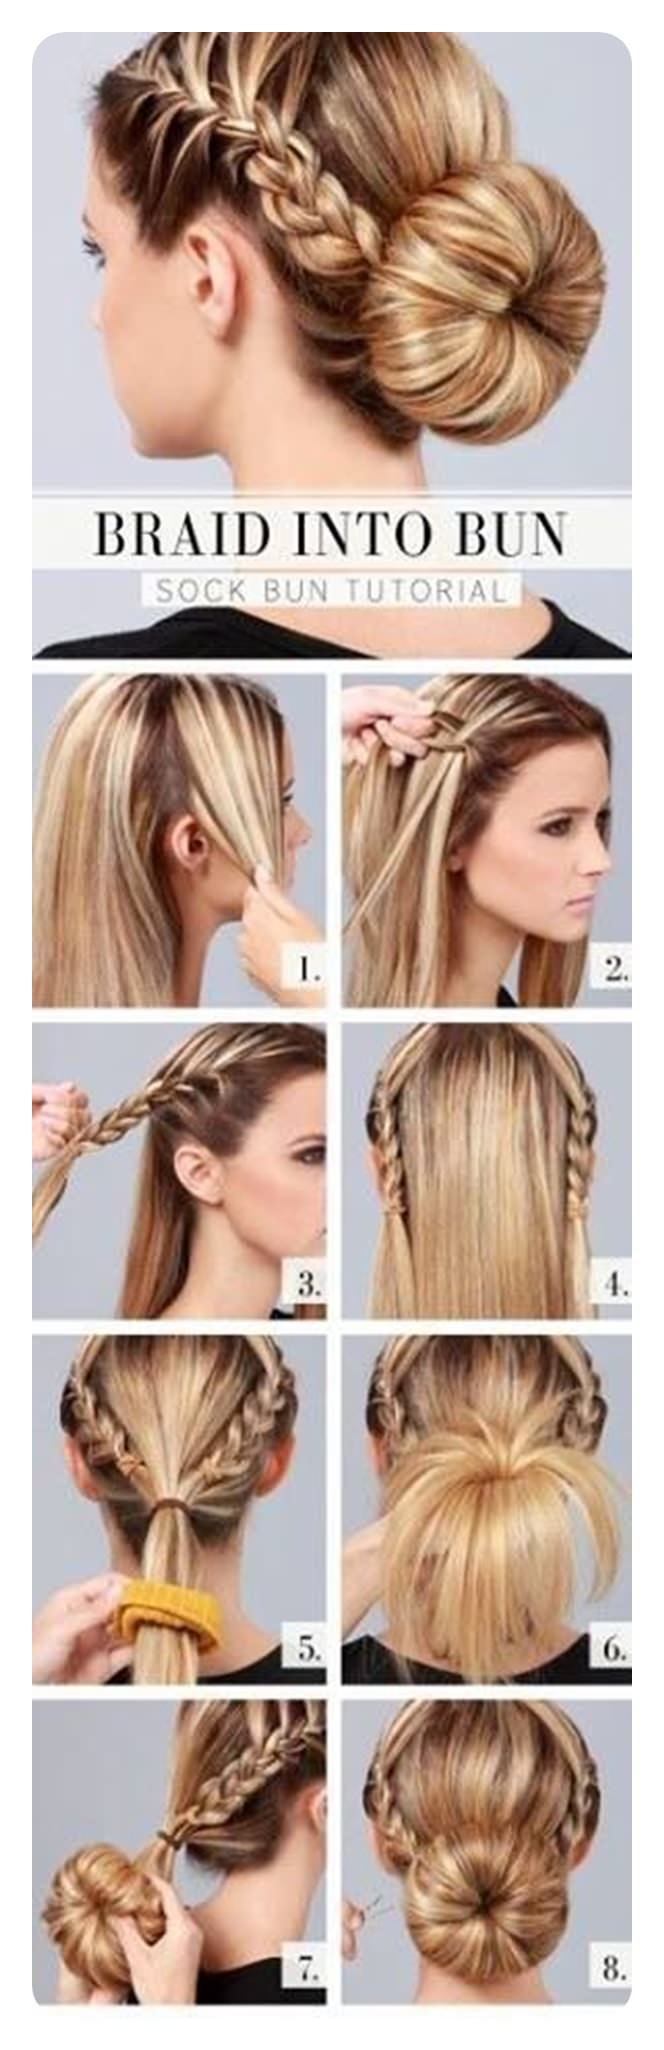 60 Awesome Sock Bun Hairstyles With Tutorial